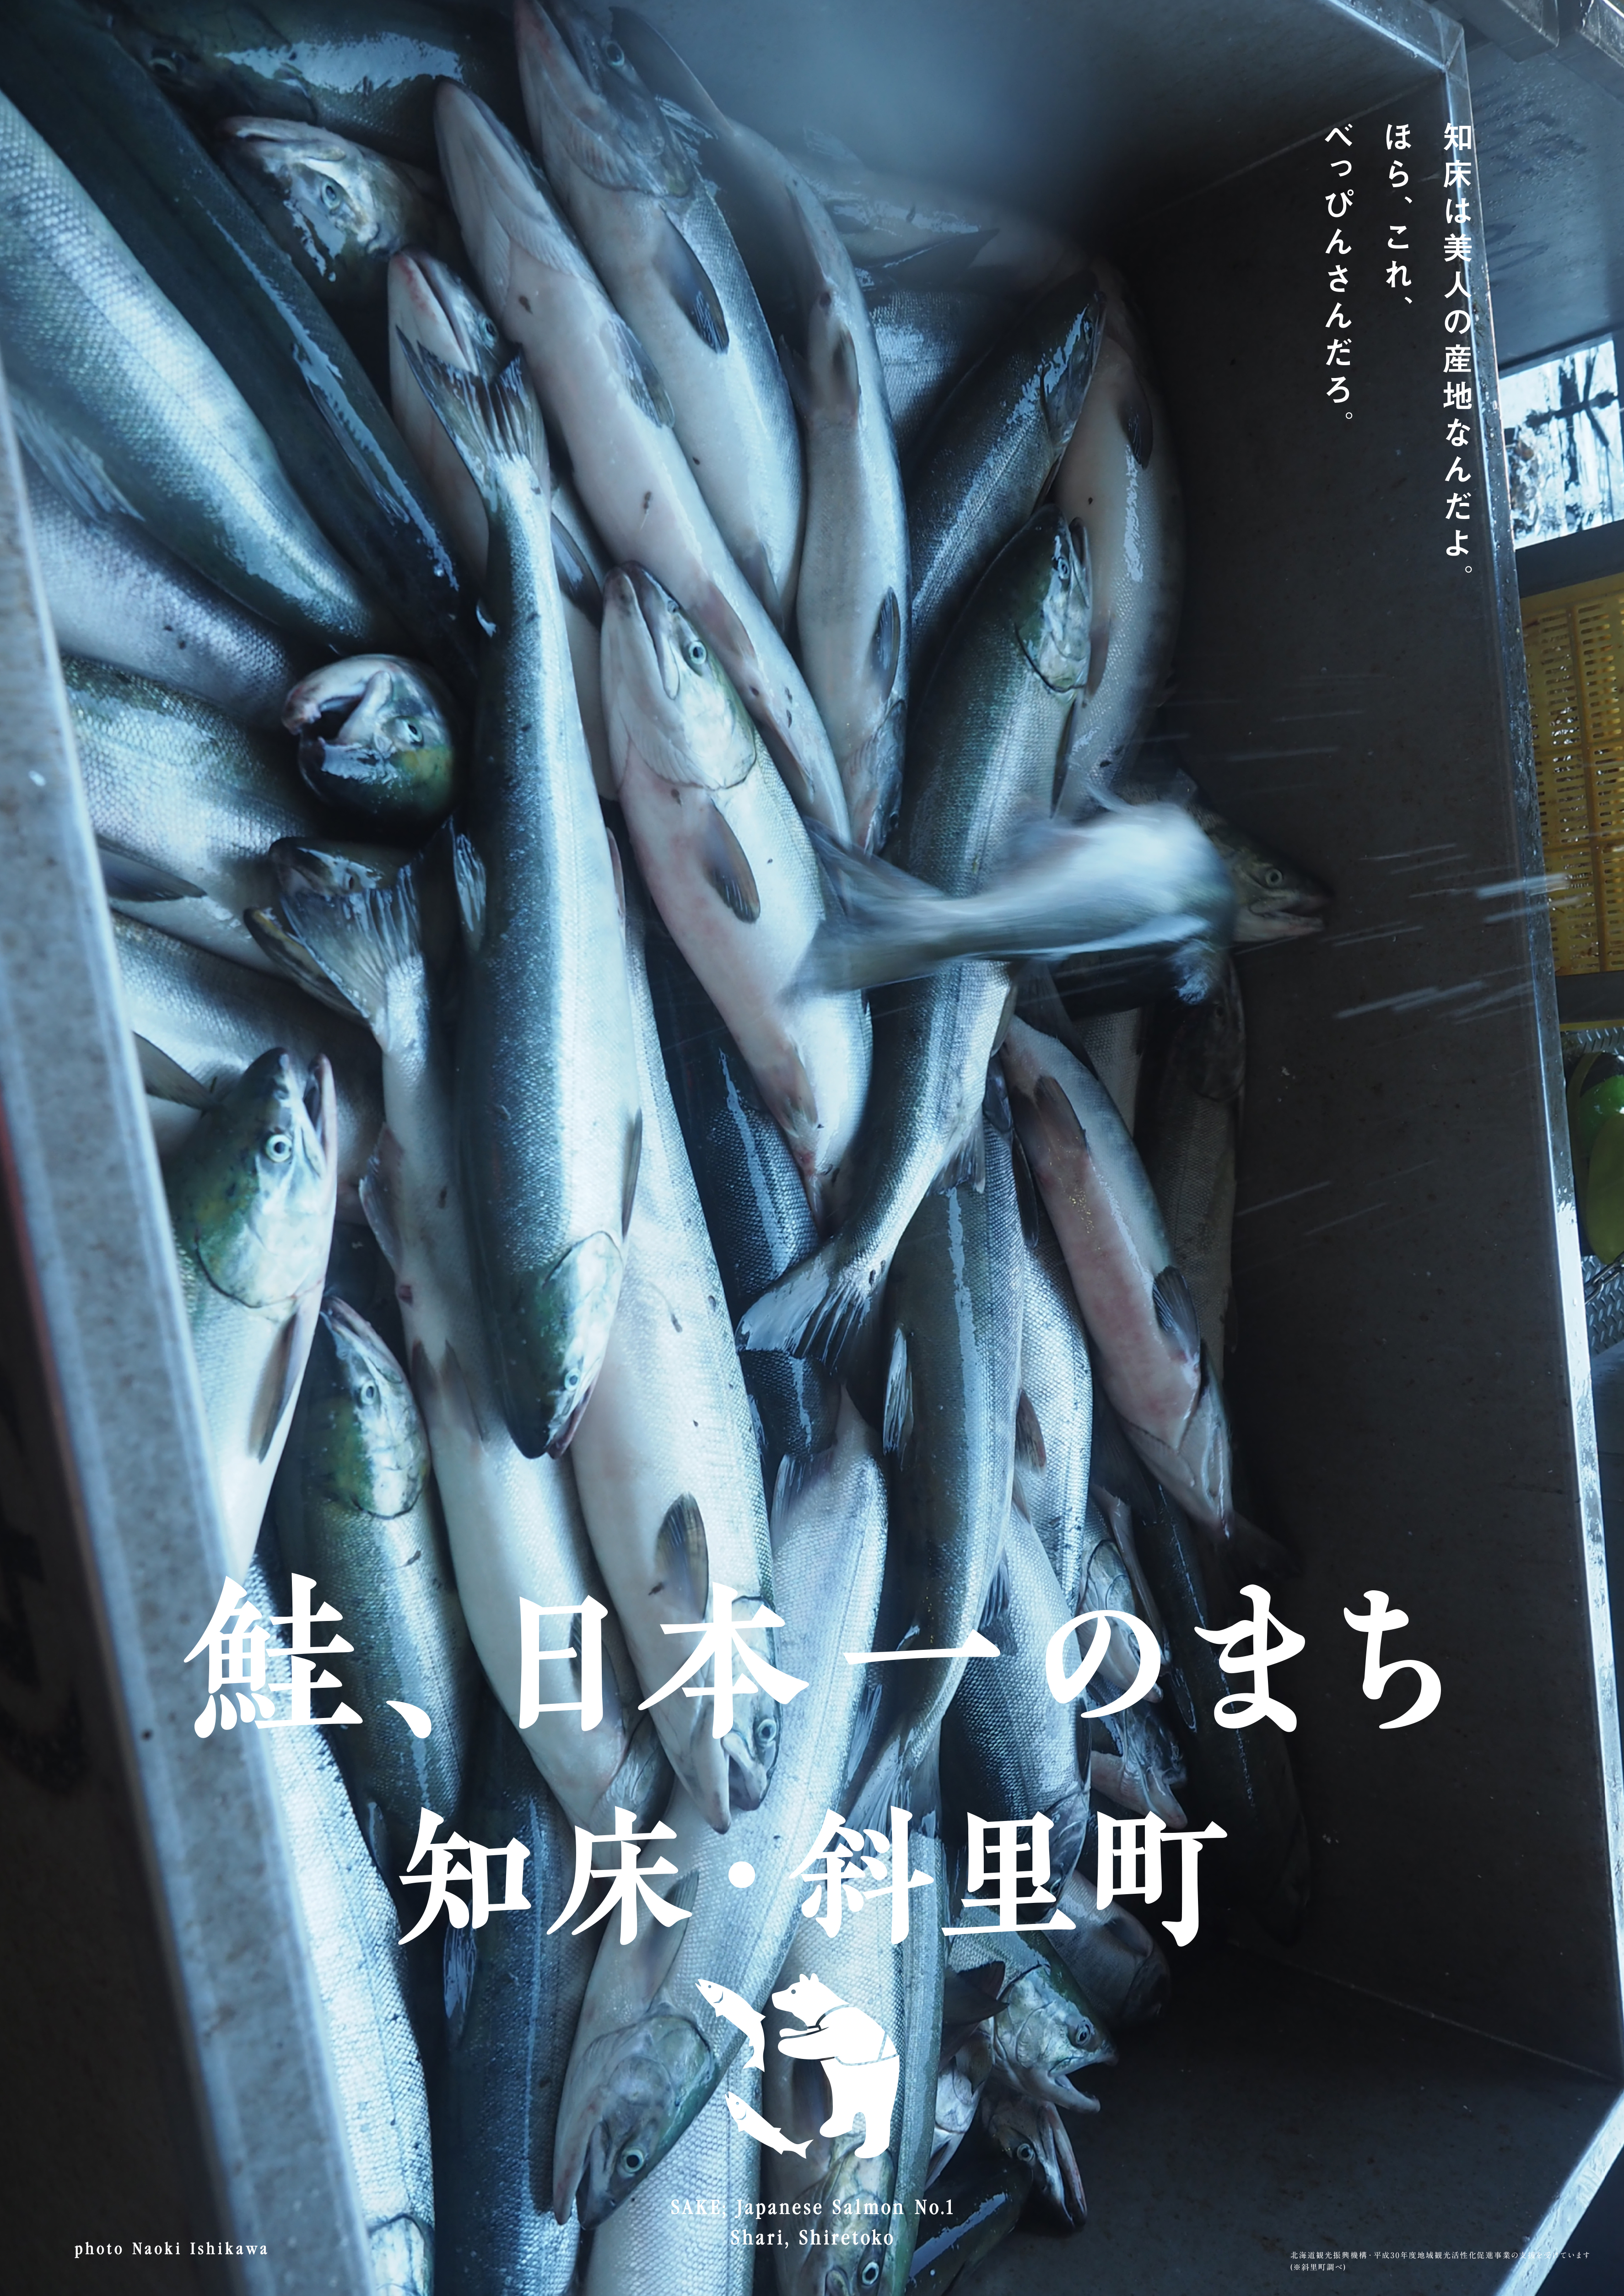 SHIRETOKO FISHERMAN'S PRIDE